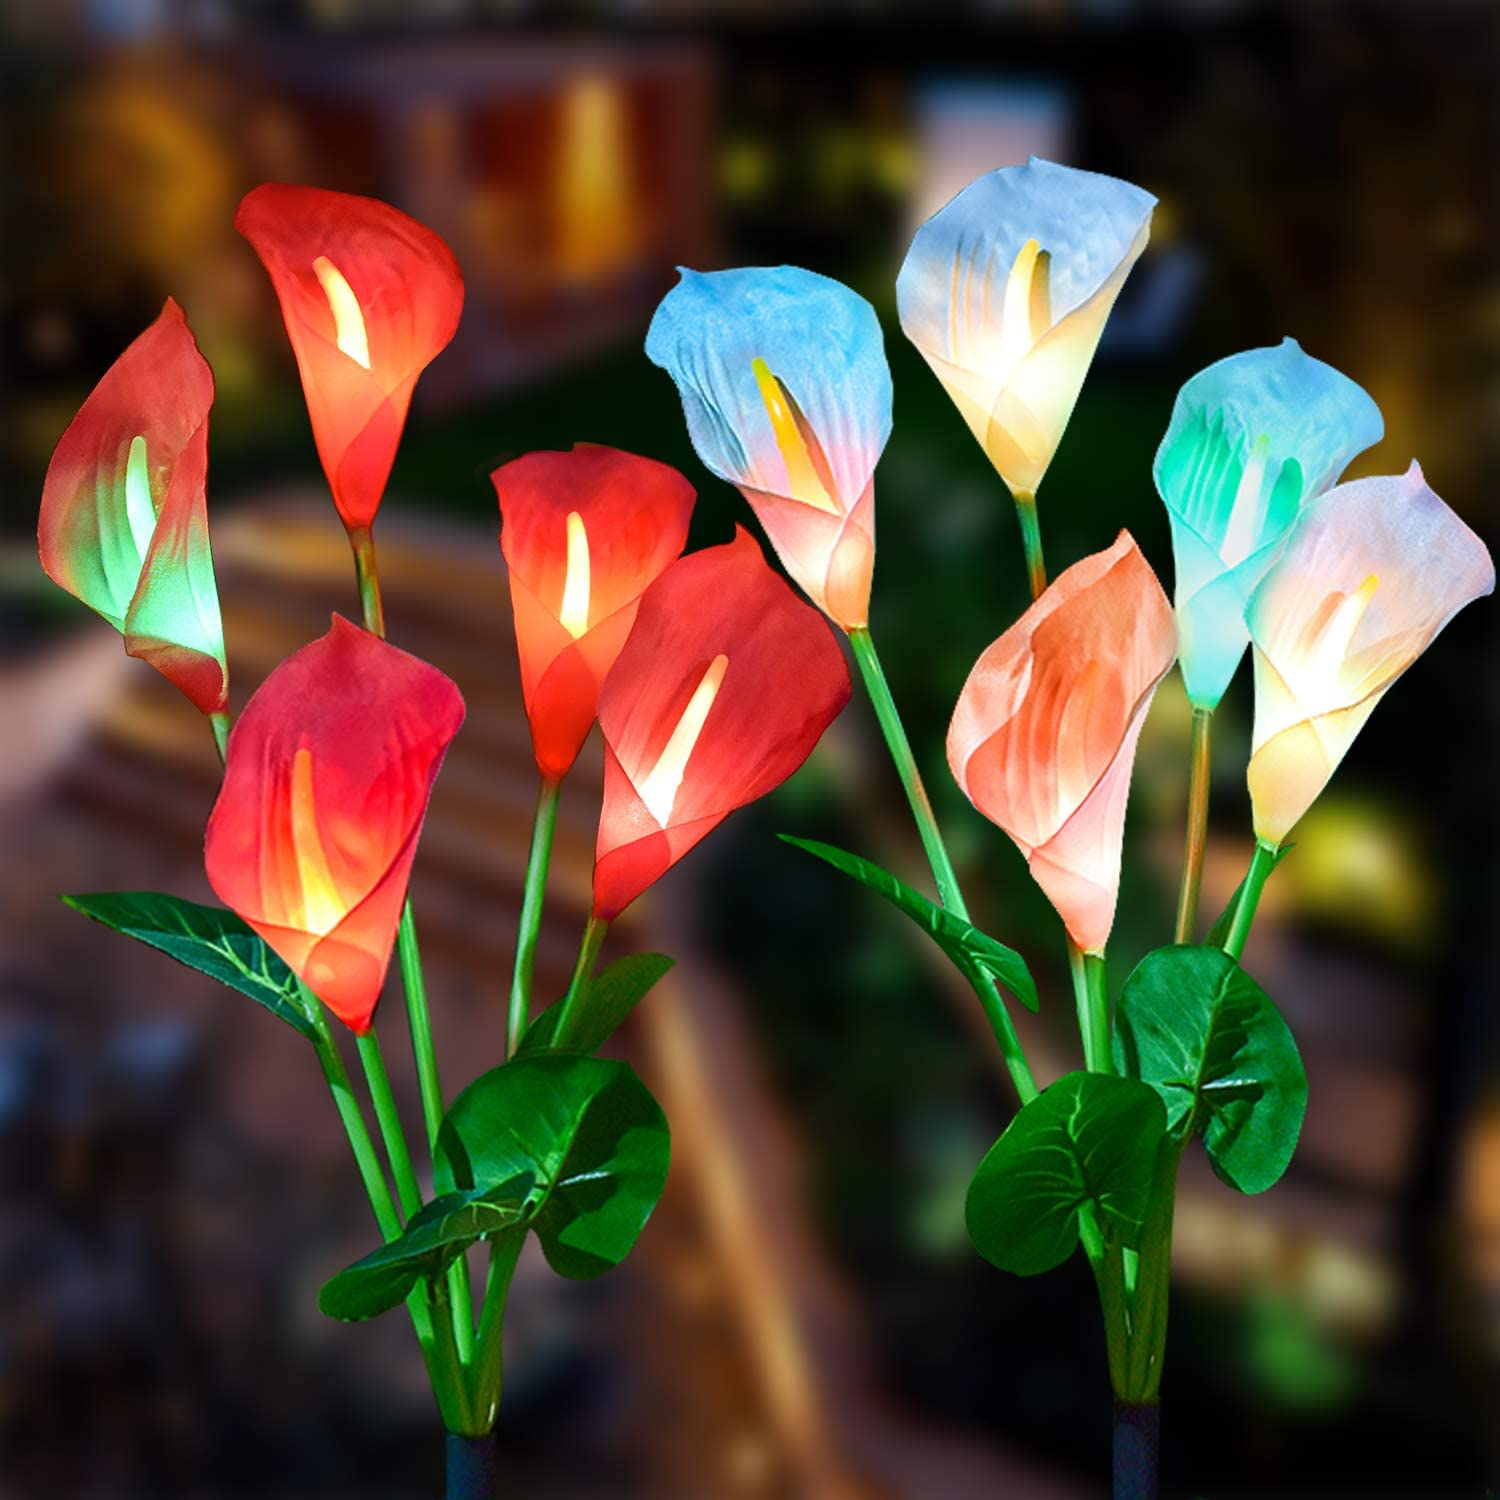 Purple and White 2 Pack Calla Lily LED Solar Flower Light with Multi-Color Changing LED Solar Decorative Lights for Garden Patio Doingart Outdoor Solar Garden Light Backyard